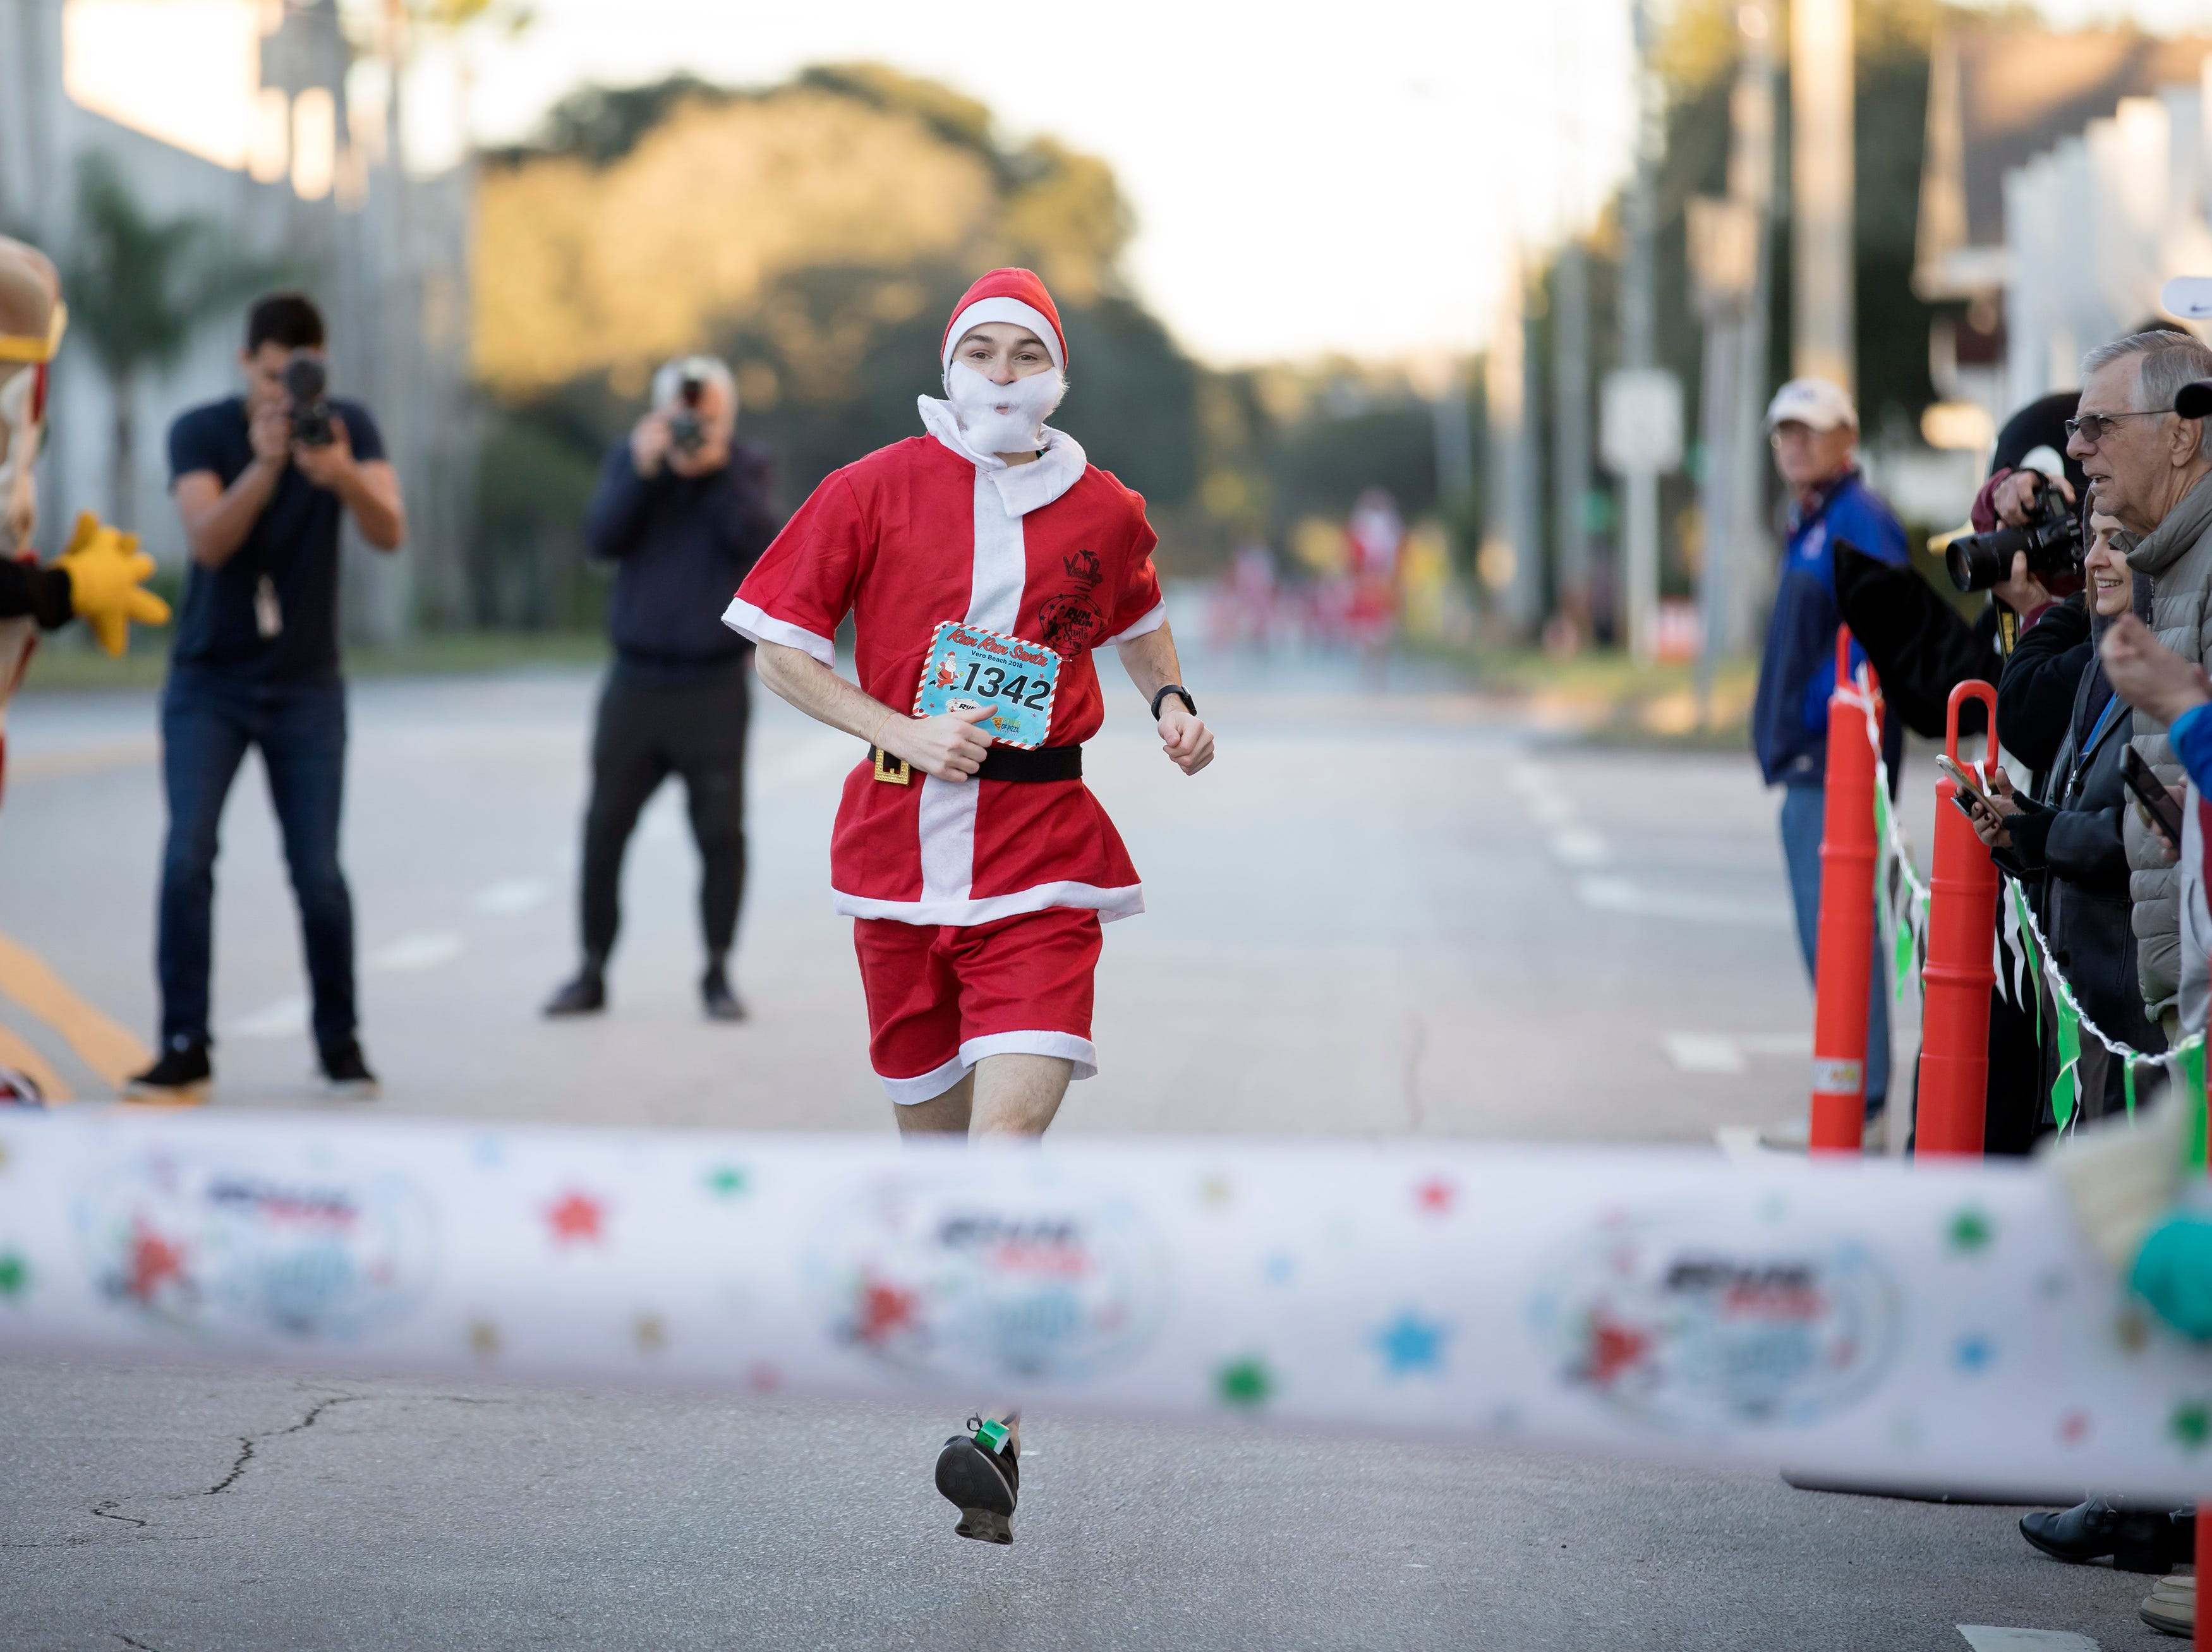 Michael Ellenburger, of Chicago, crosses the finish line after winning the Run Run Santa one-mile race Sunday, Dec. 23, 2018, through downtown Vero Beach. Ellenburger finished with a time of 5:01.81.